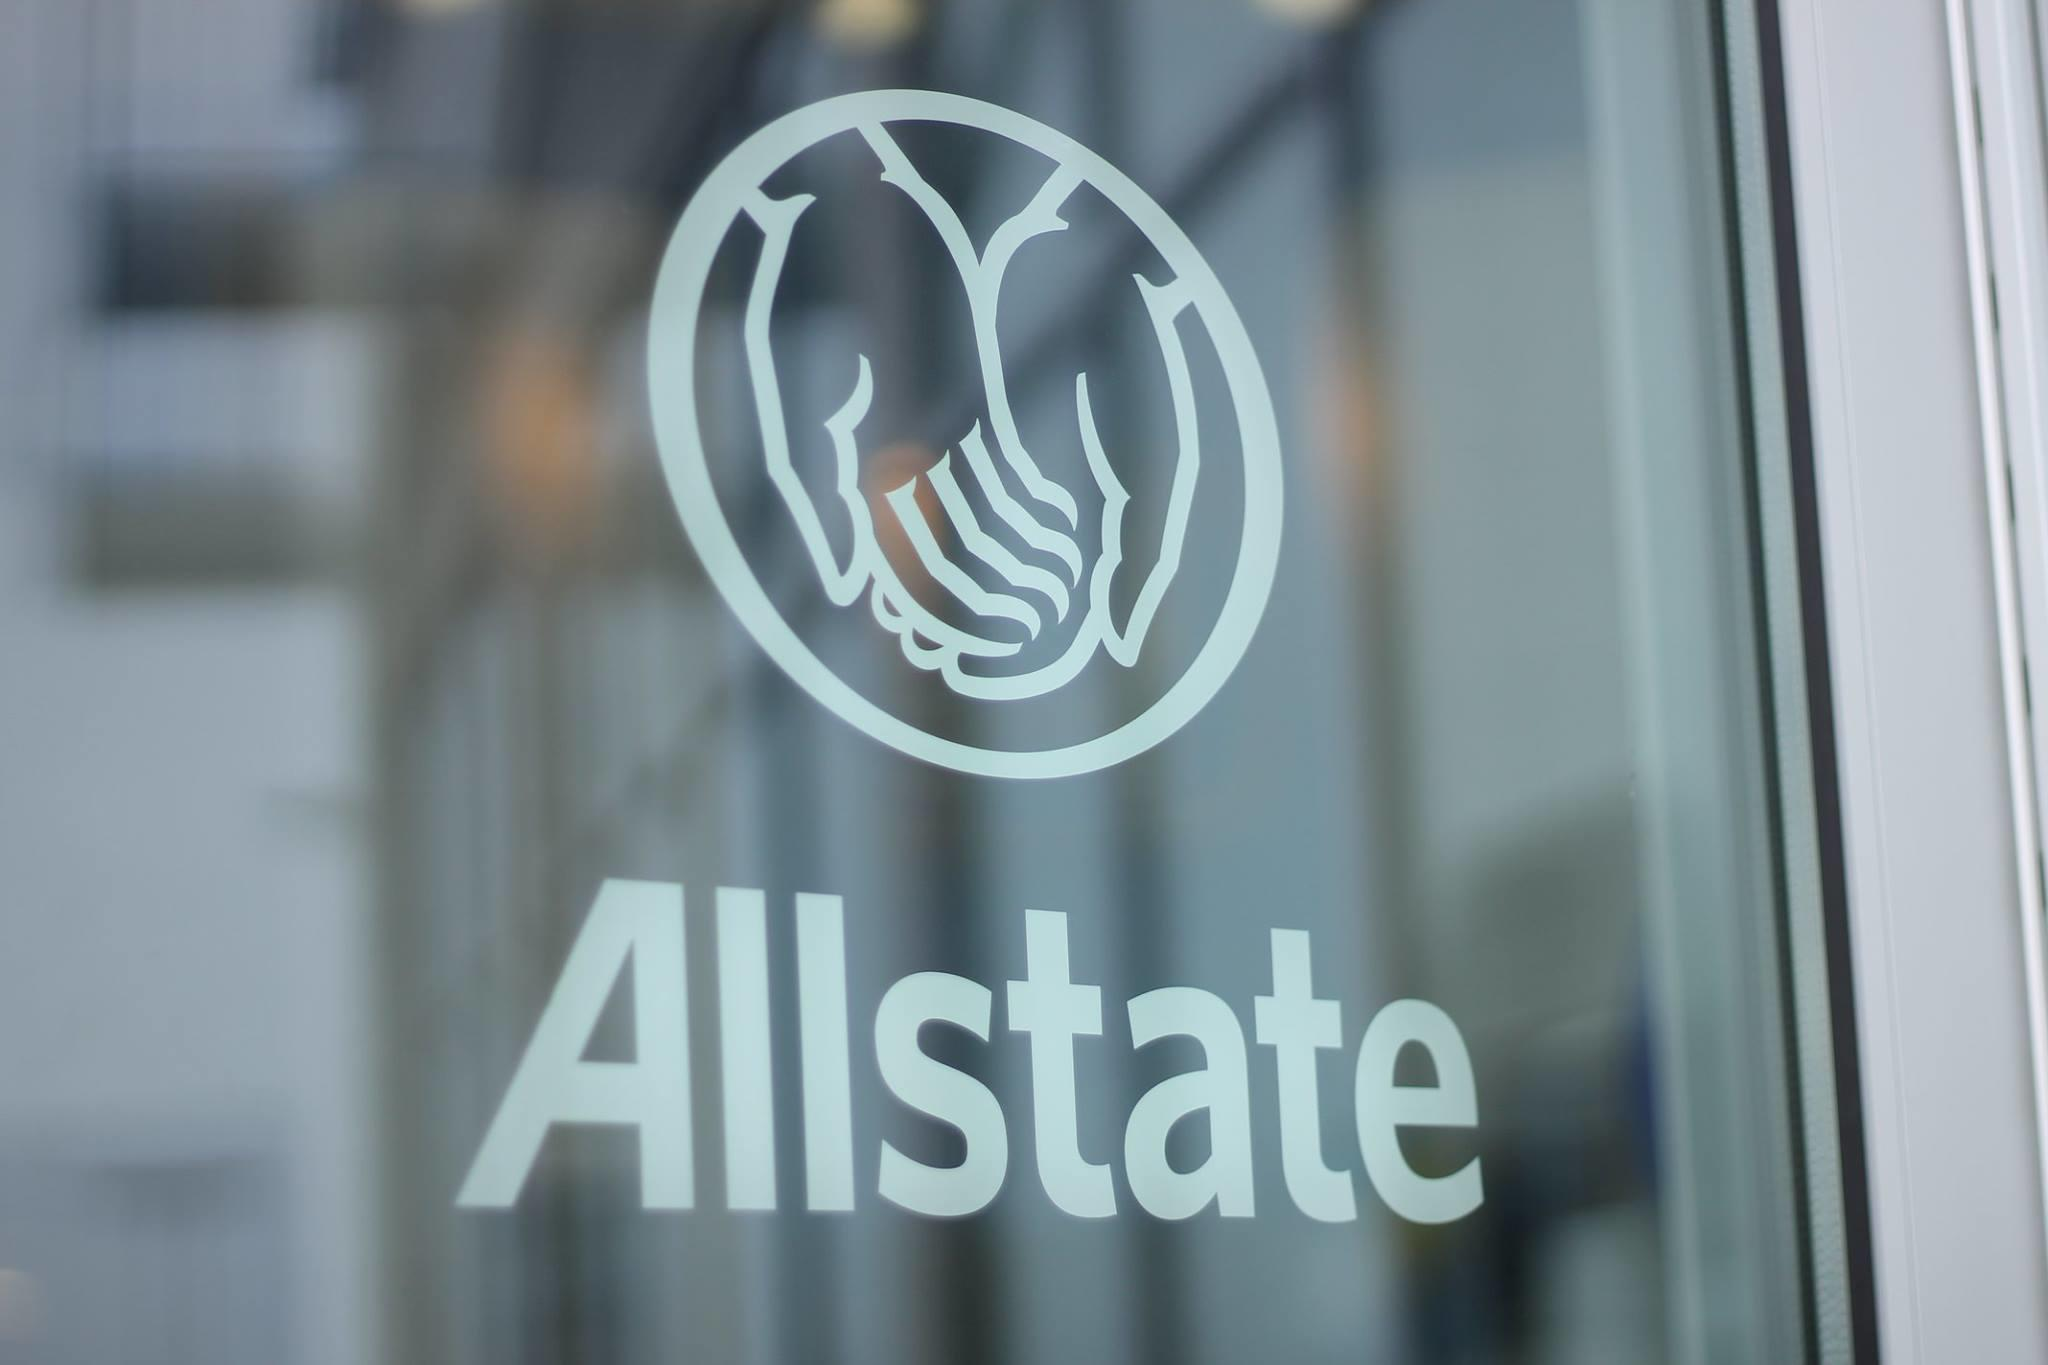 a company review of allstate insurance Allstate founded in 1931 is a company that provides a wide range of insurance products to meet the various needs of individual consumers and businesses its .